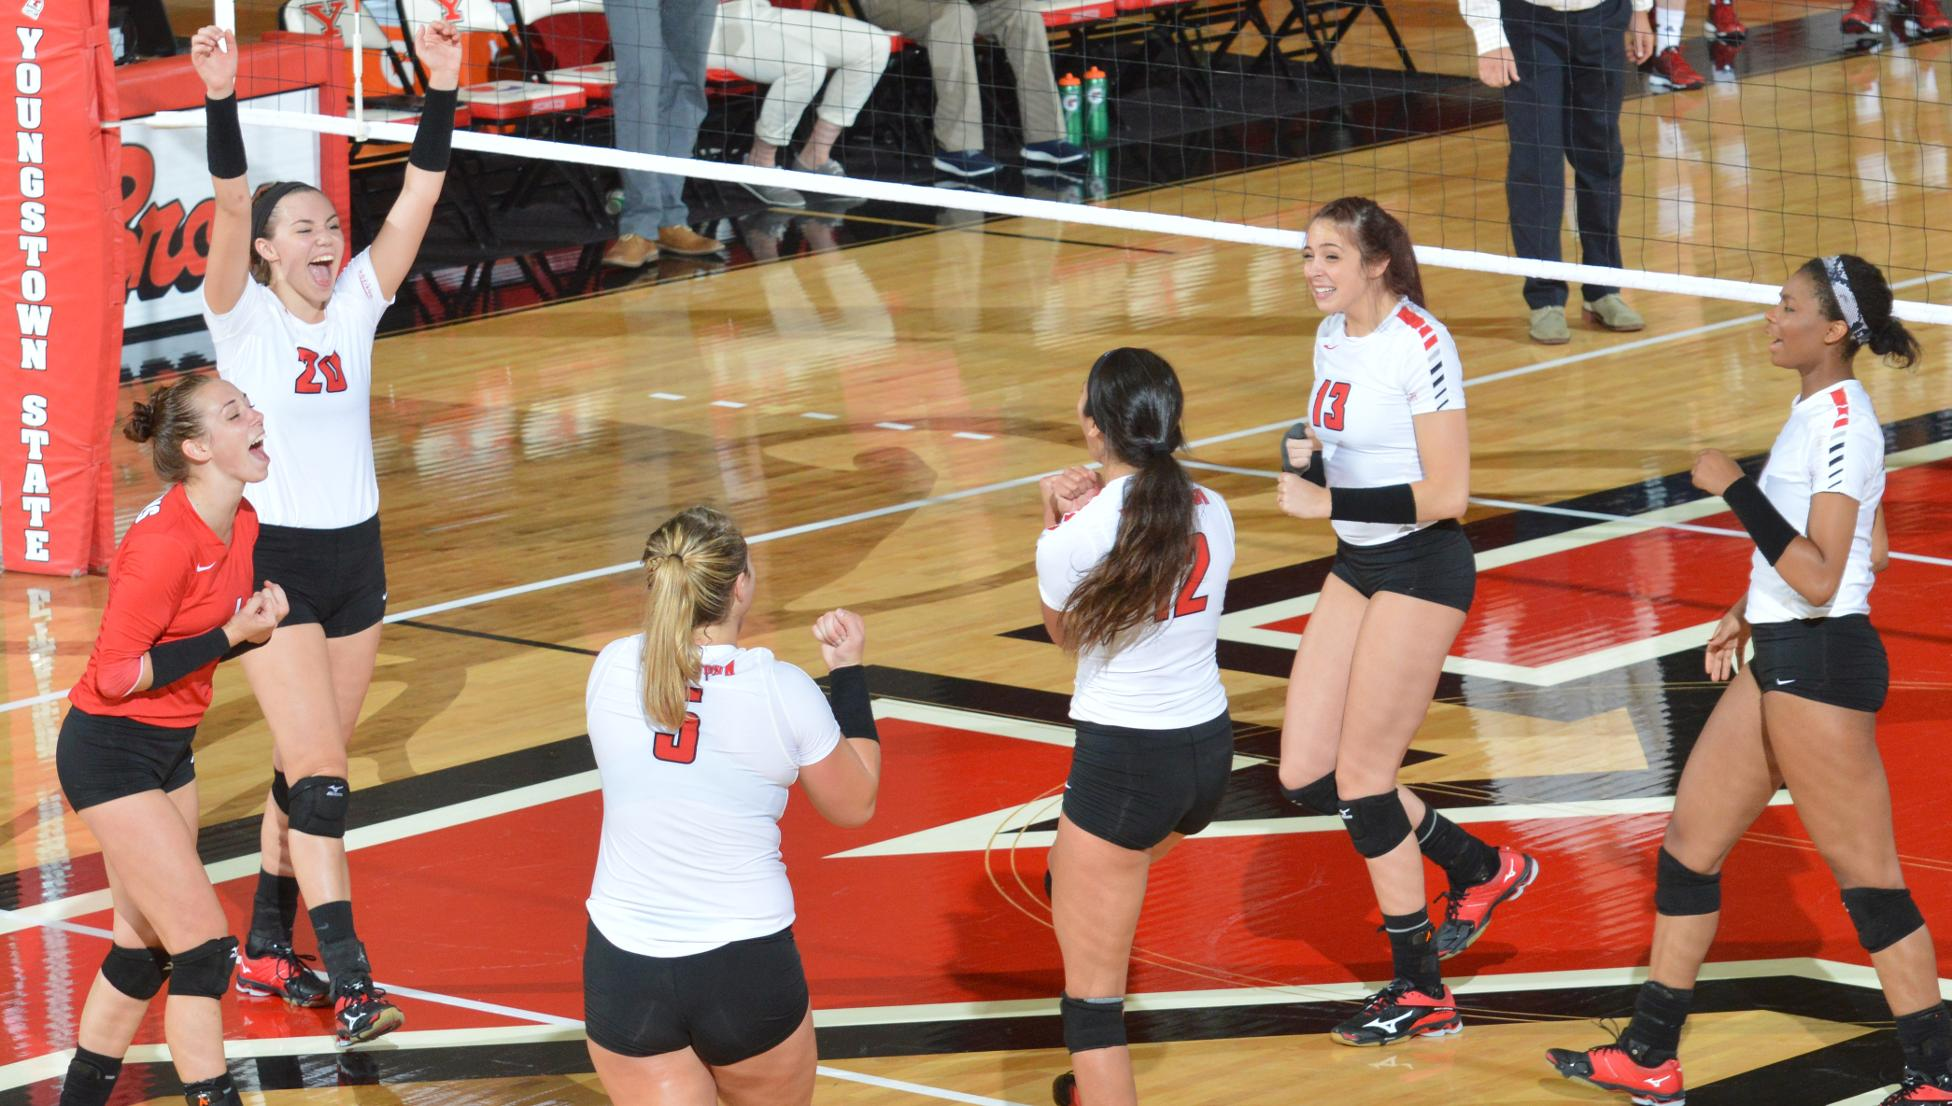 YSU Volleyball (Photo by Matt Milligan)